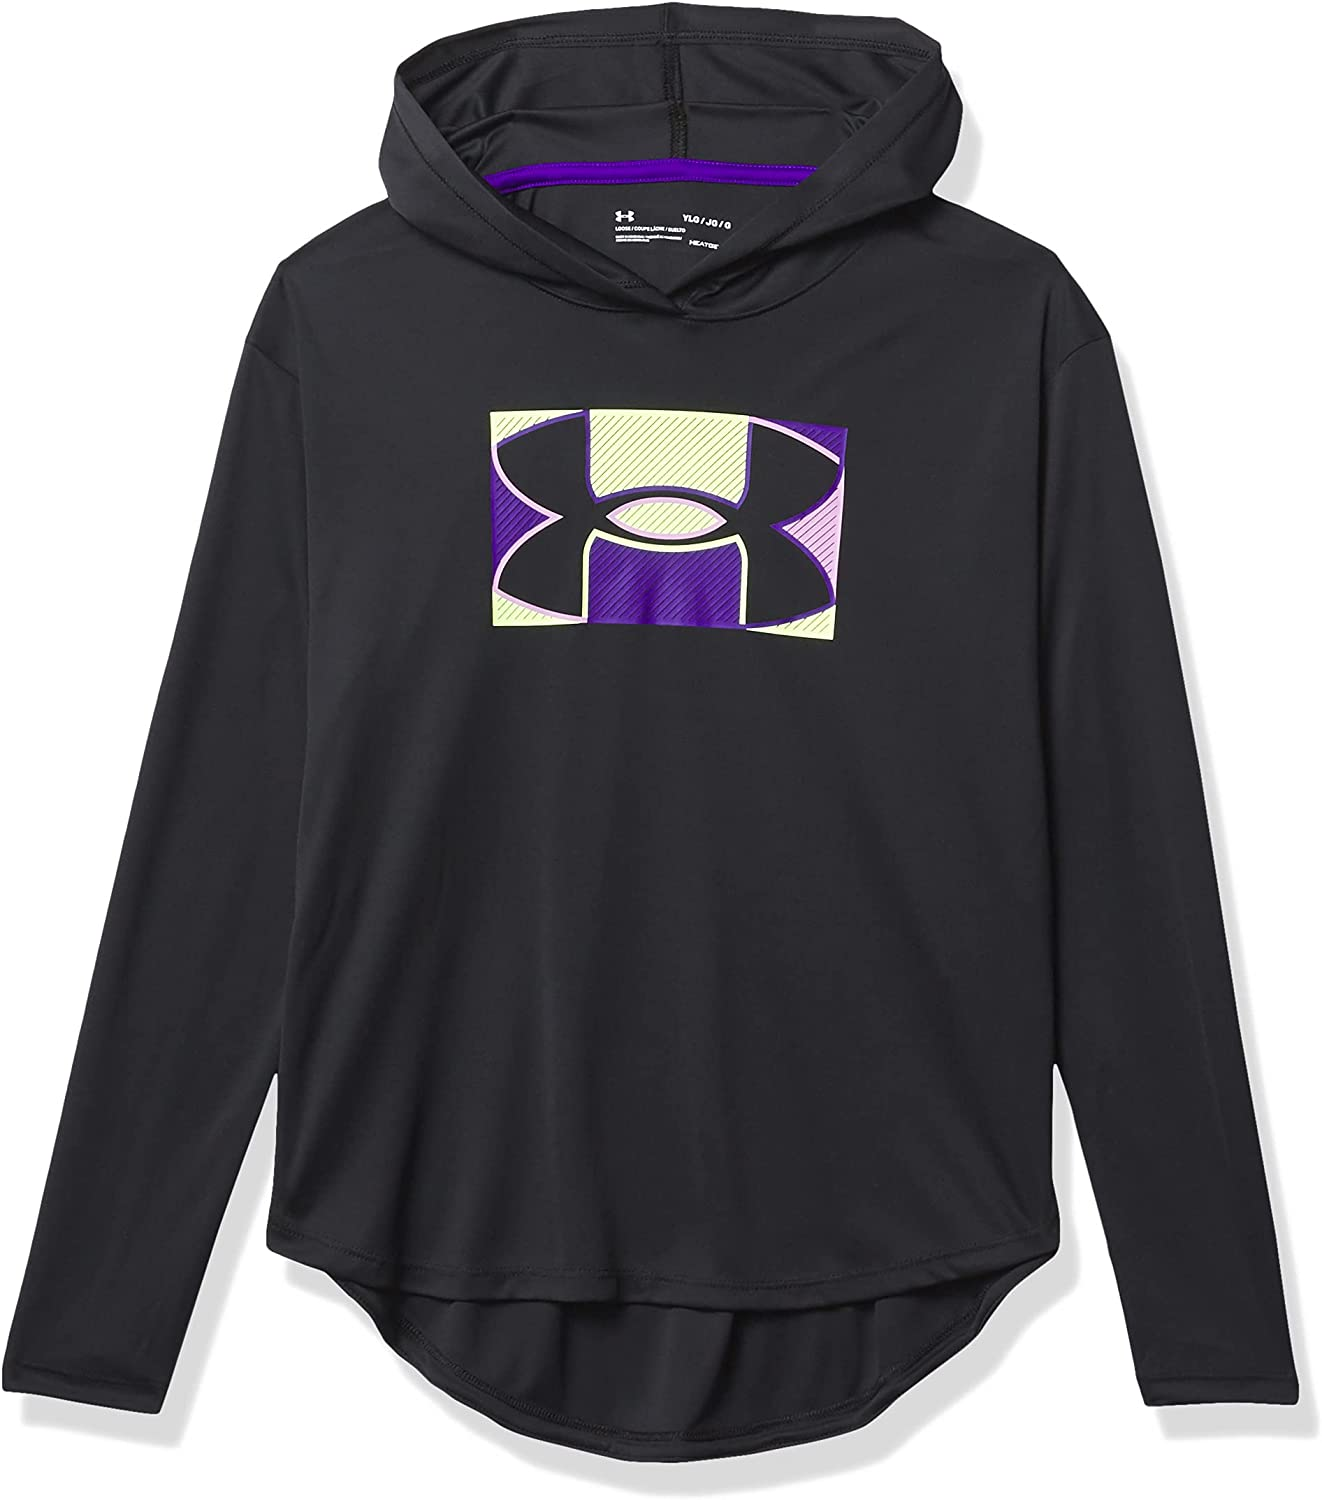 Under Armour Girls' Large special price Ranking TOP1 Tech Graphic Hoodie